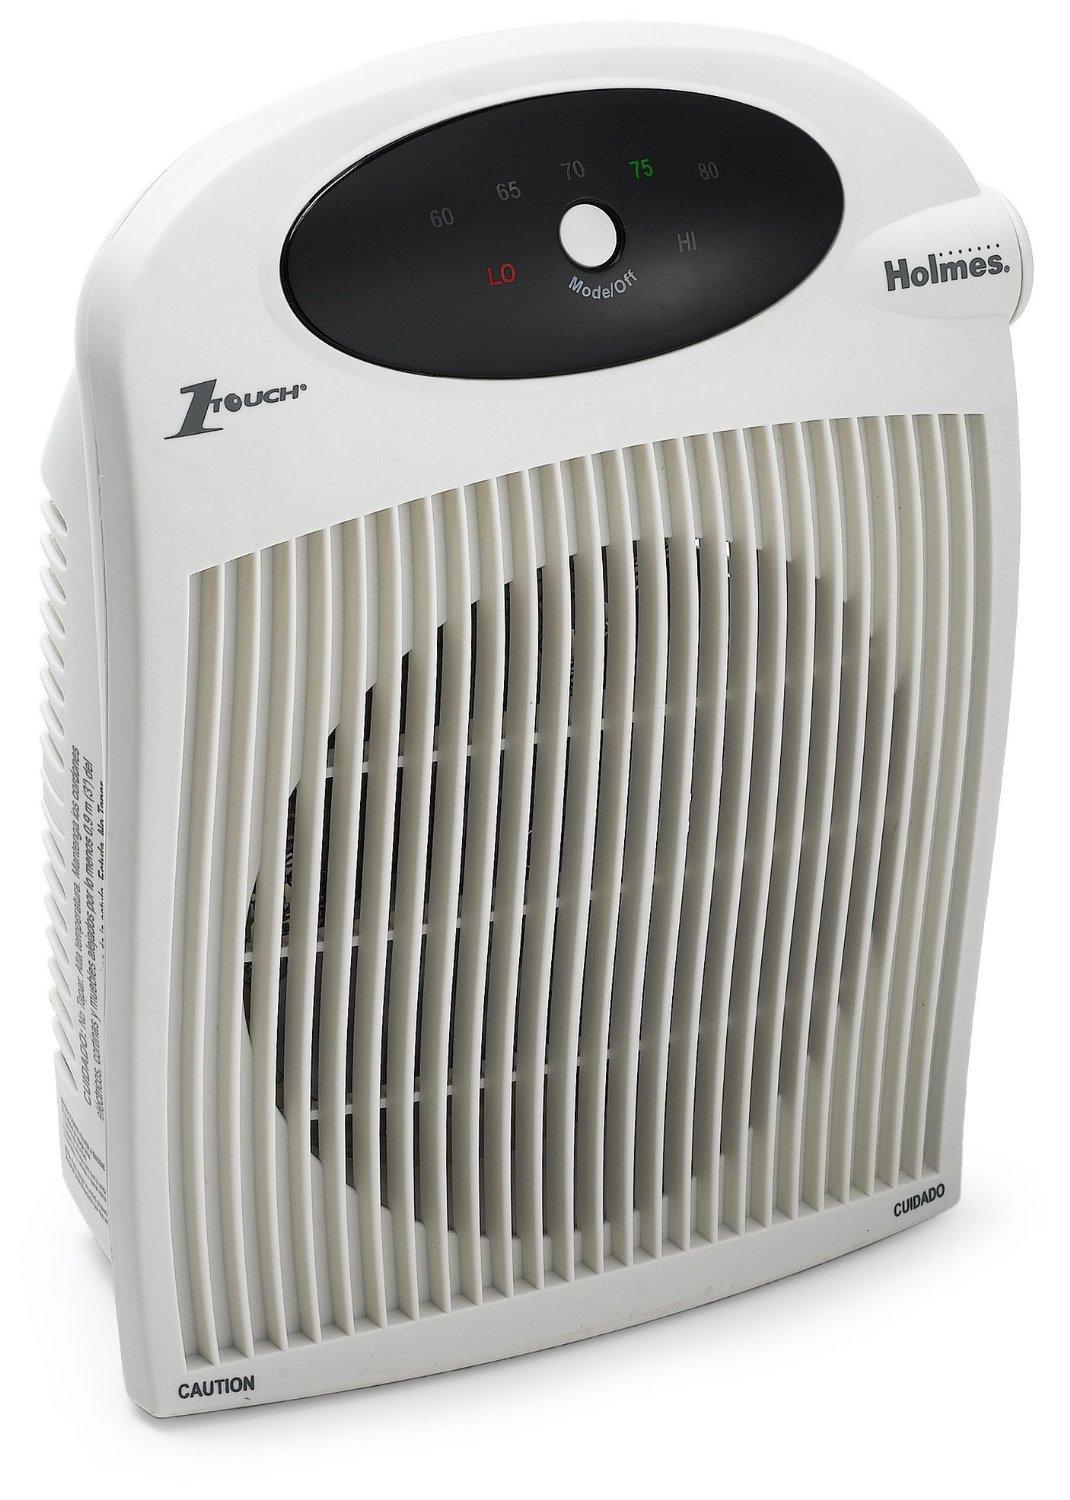 Amazon.com - Holmes Heater with 1Touch Control and ...